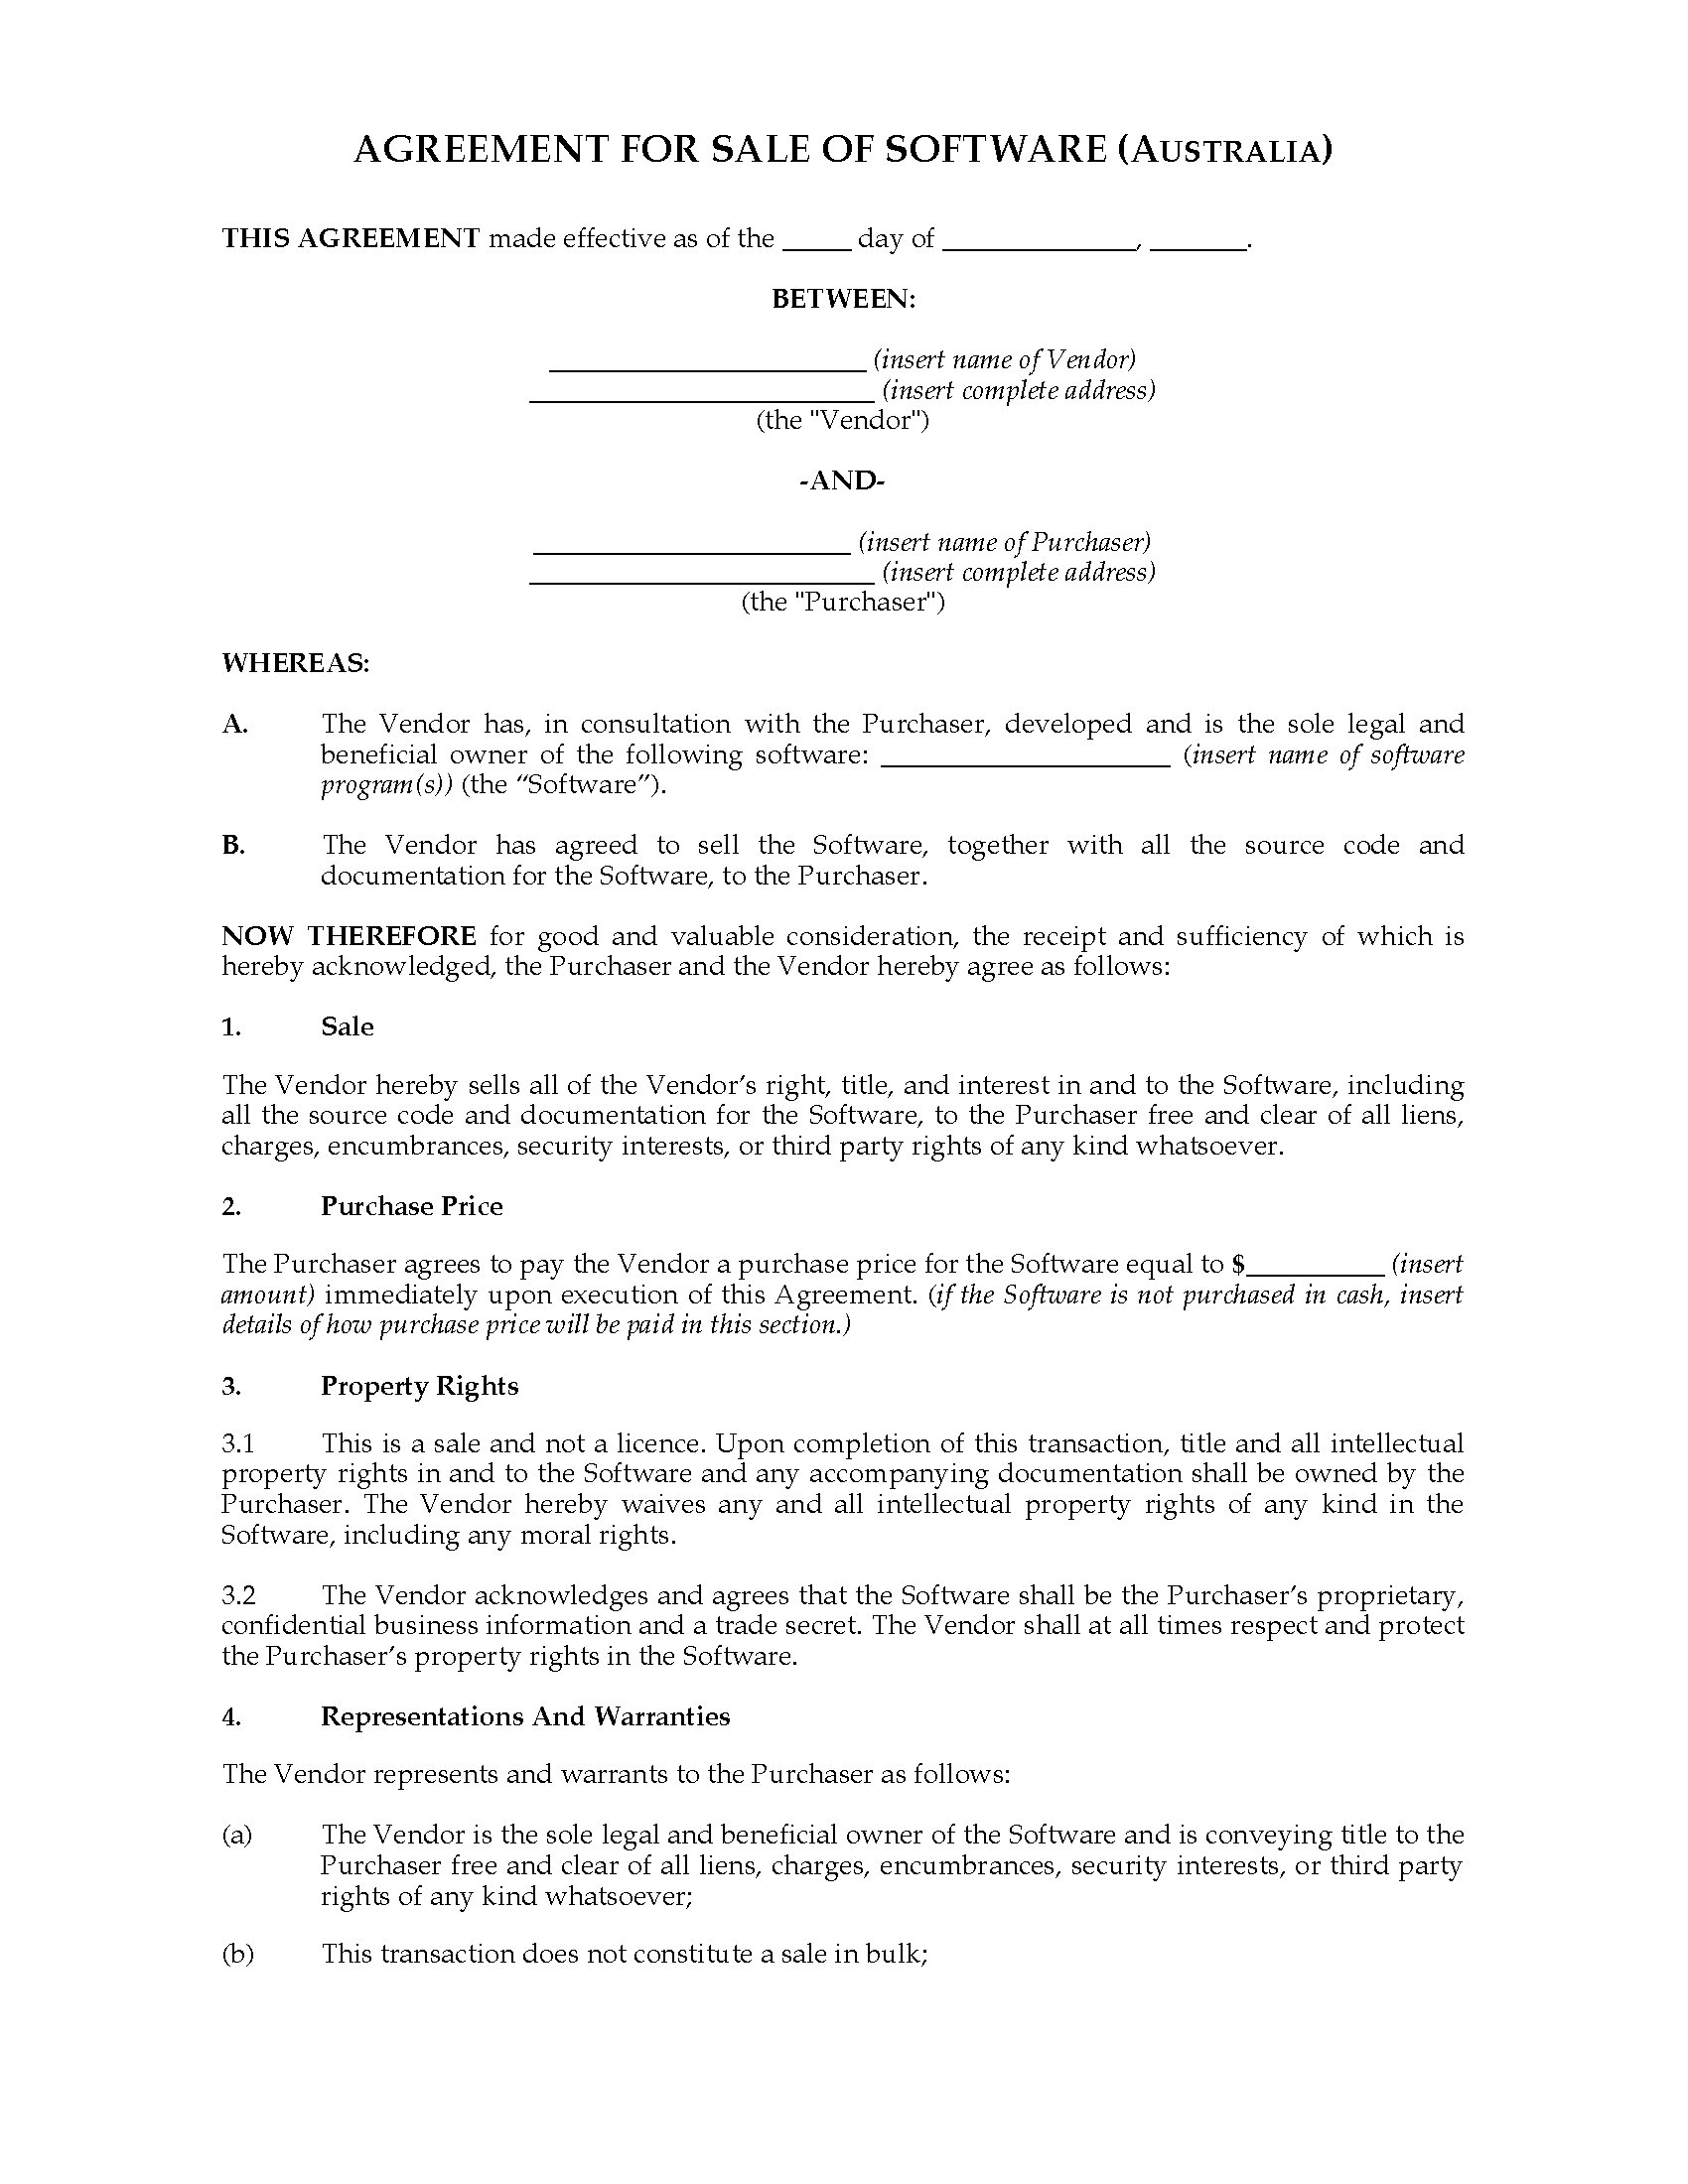 Australia Sale Agreement For Interest In Software Legal Forms And Business Templates Megadox Com